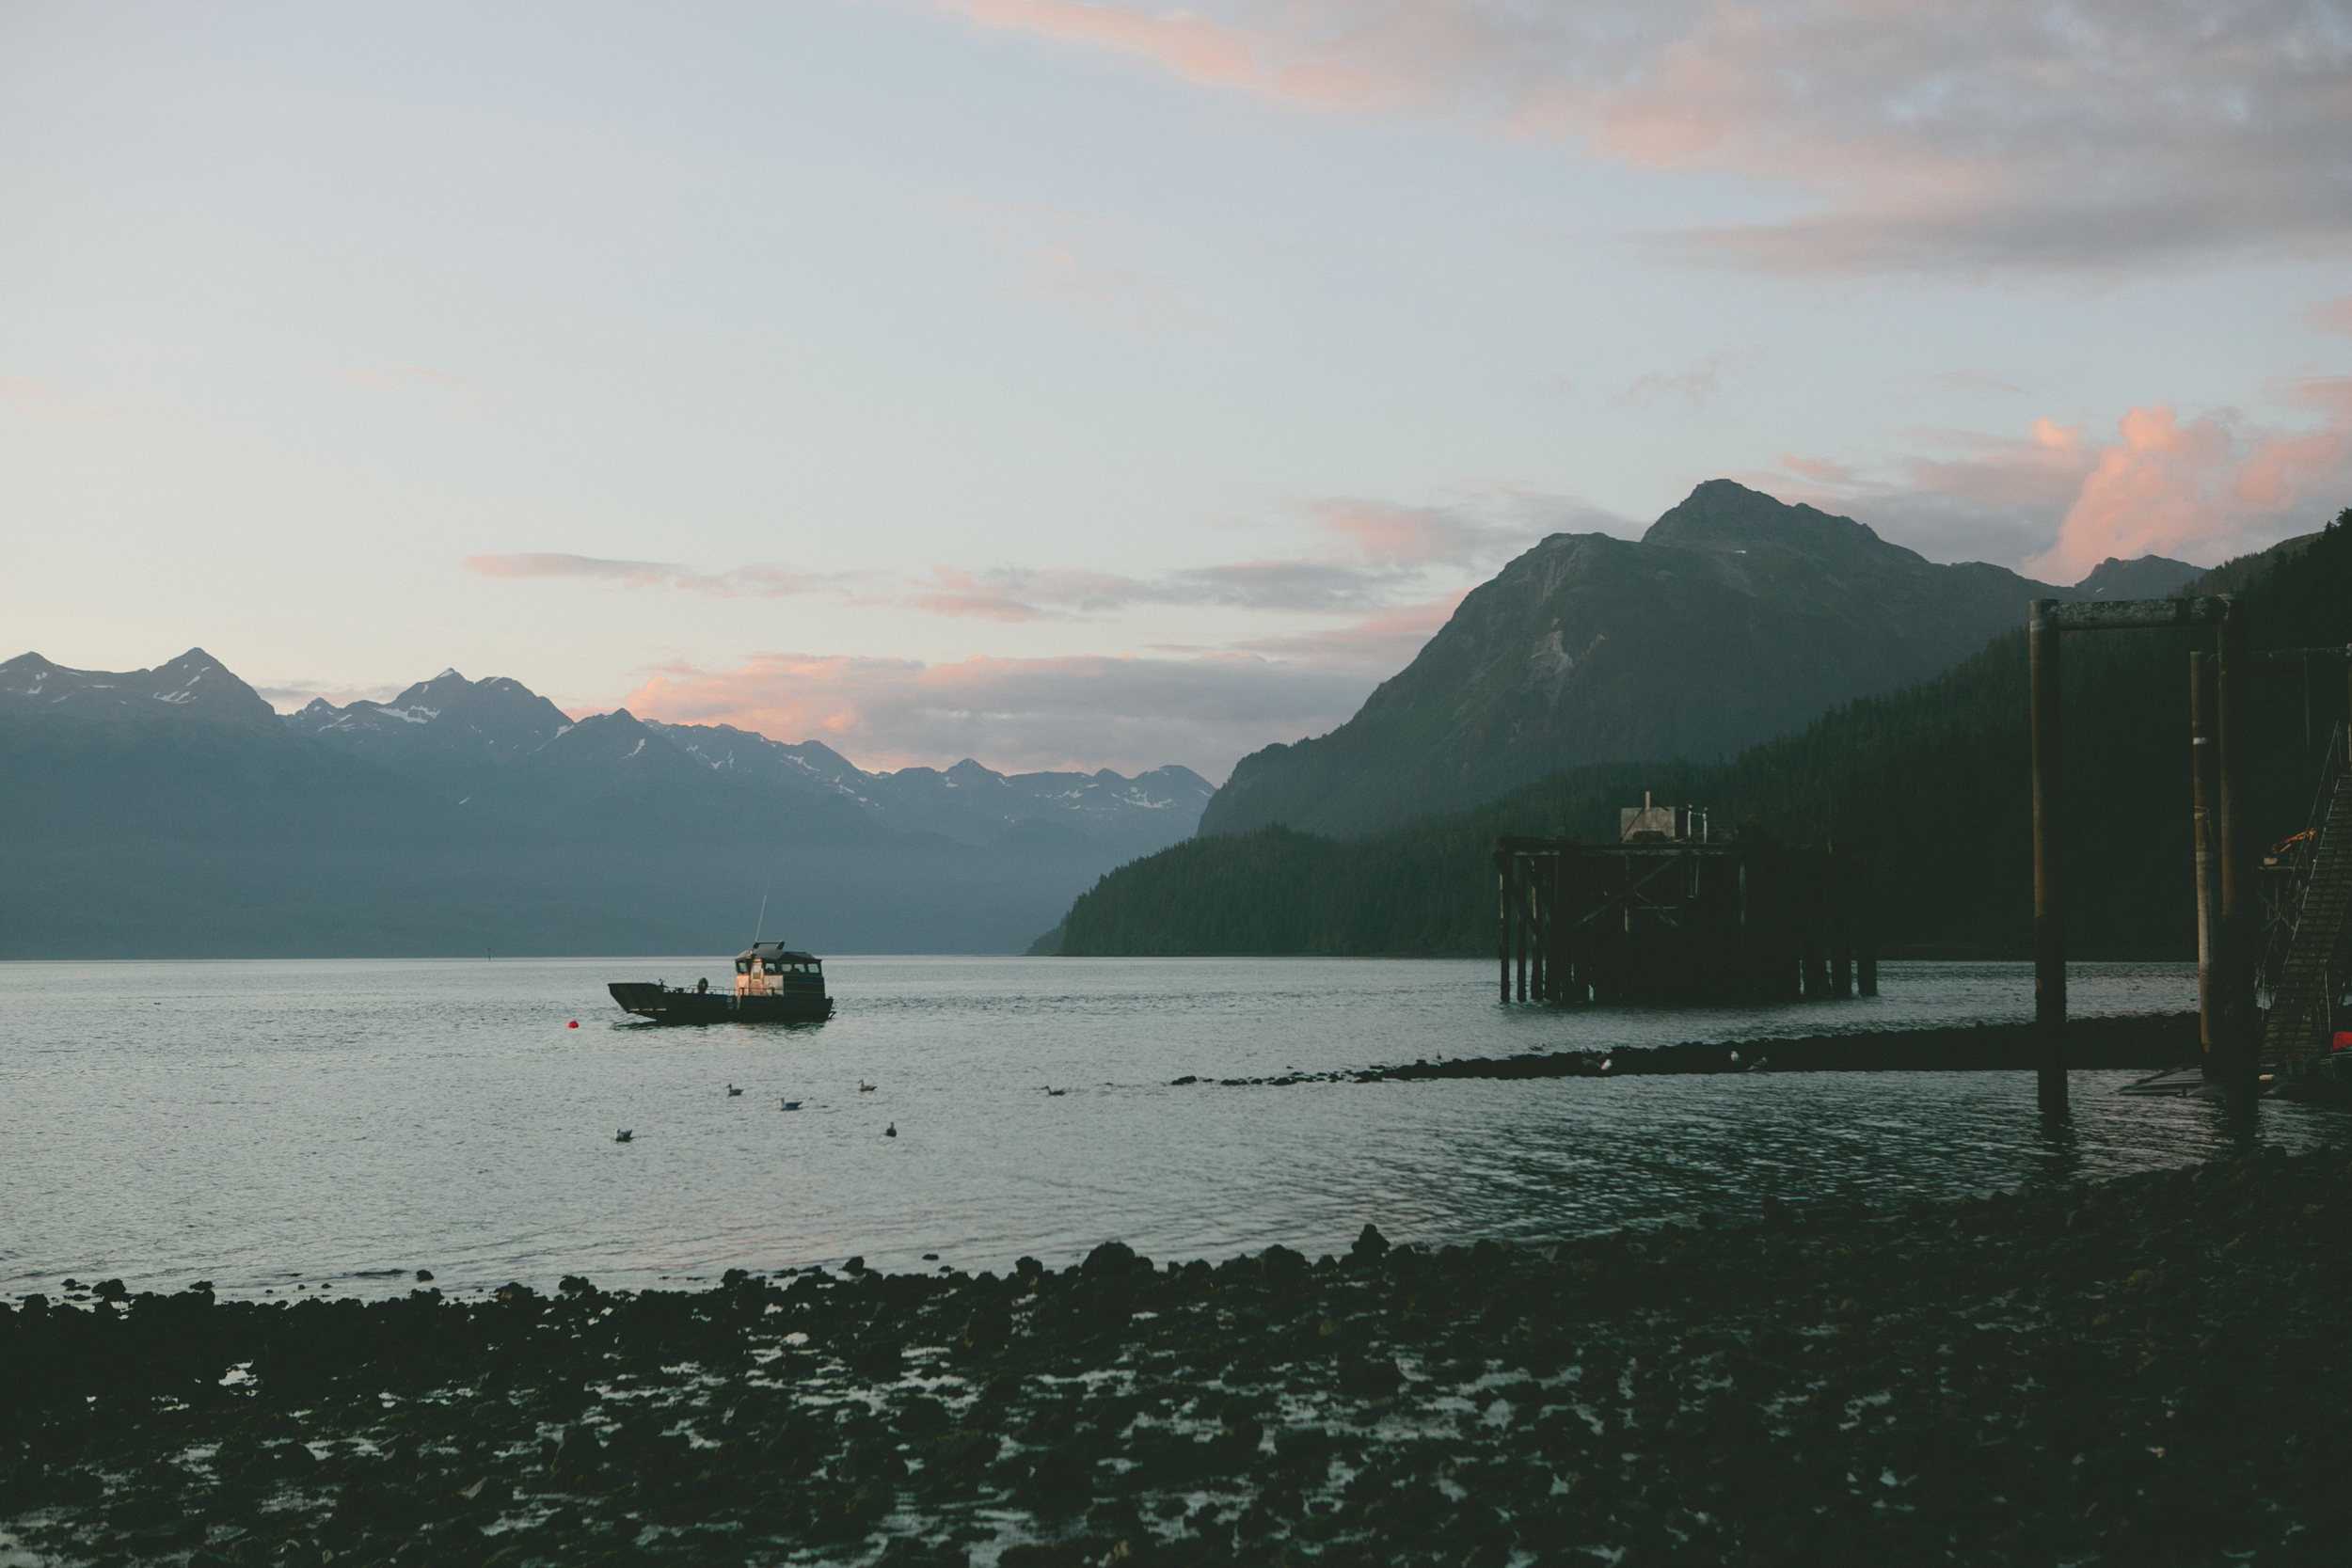 NELSON BAY - CORDOVA, ALASKA (PHOTOGRAPHS BY BRIAN SAMUELS - A THOUGHT FOR FOOD)